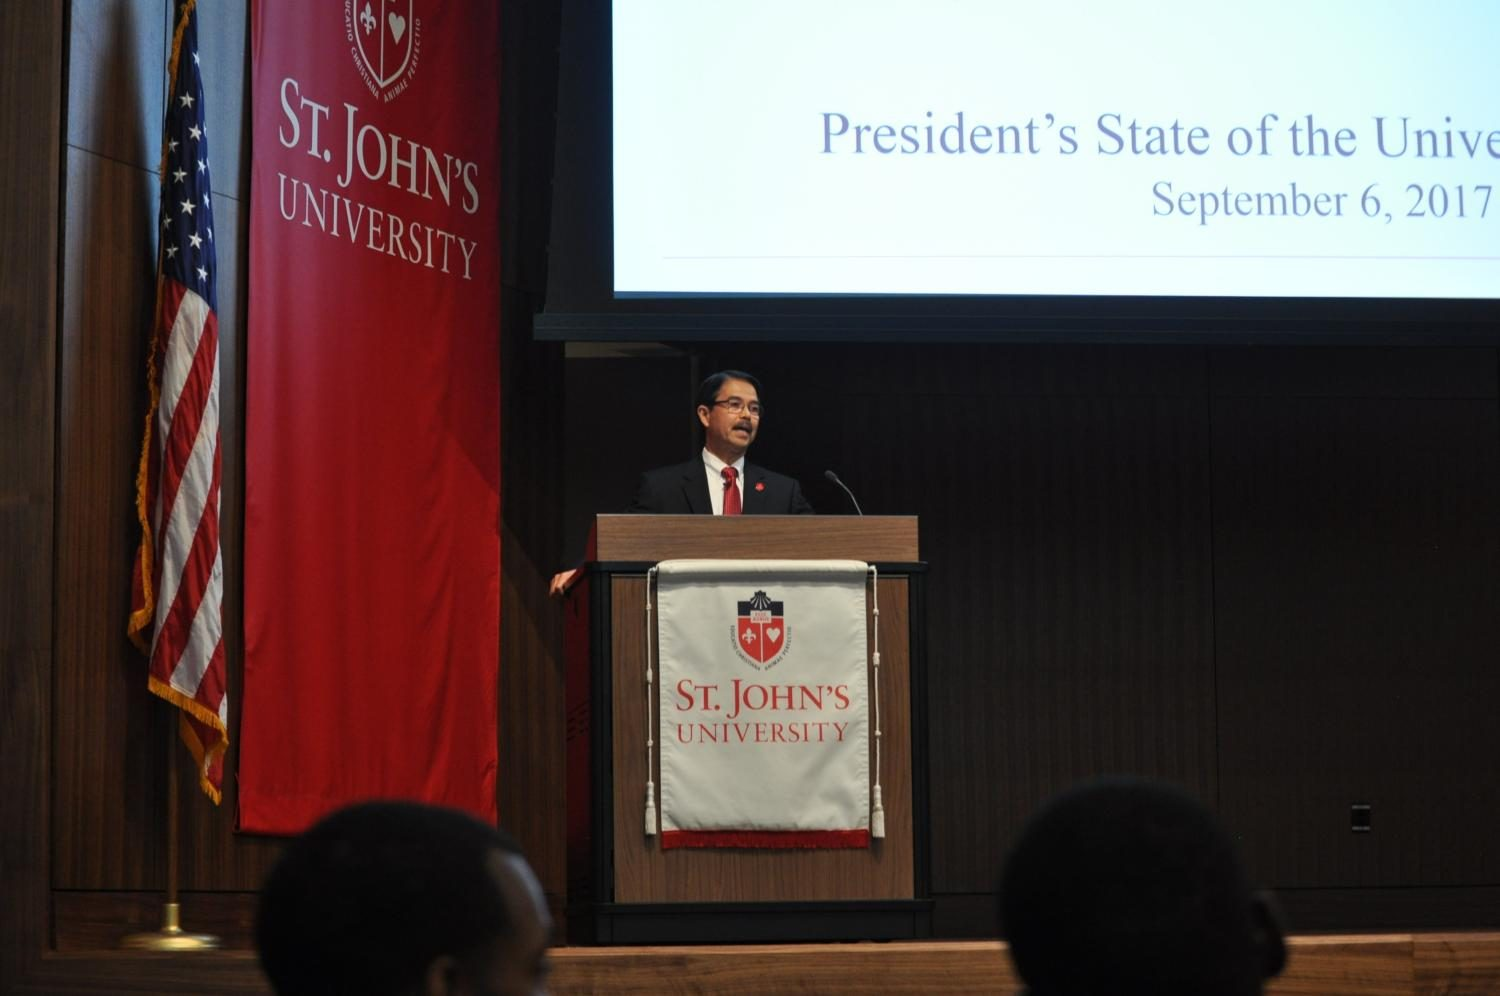 President+Gempesaw+delivered+his+annual+address+Sept.+6+in+Marillac+Auditorium.